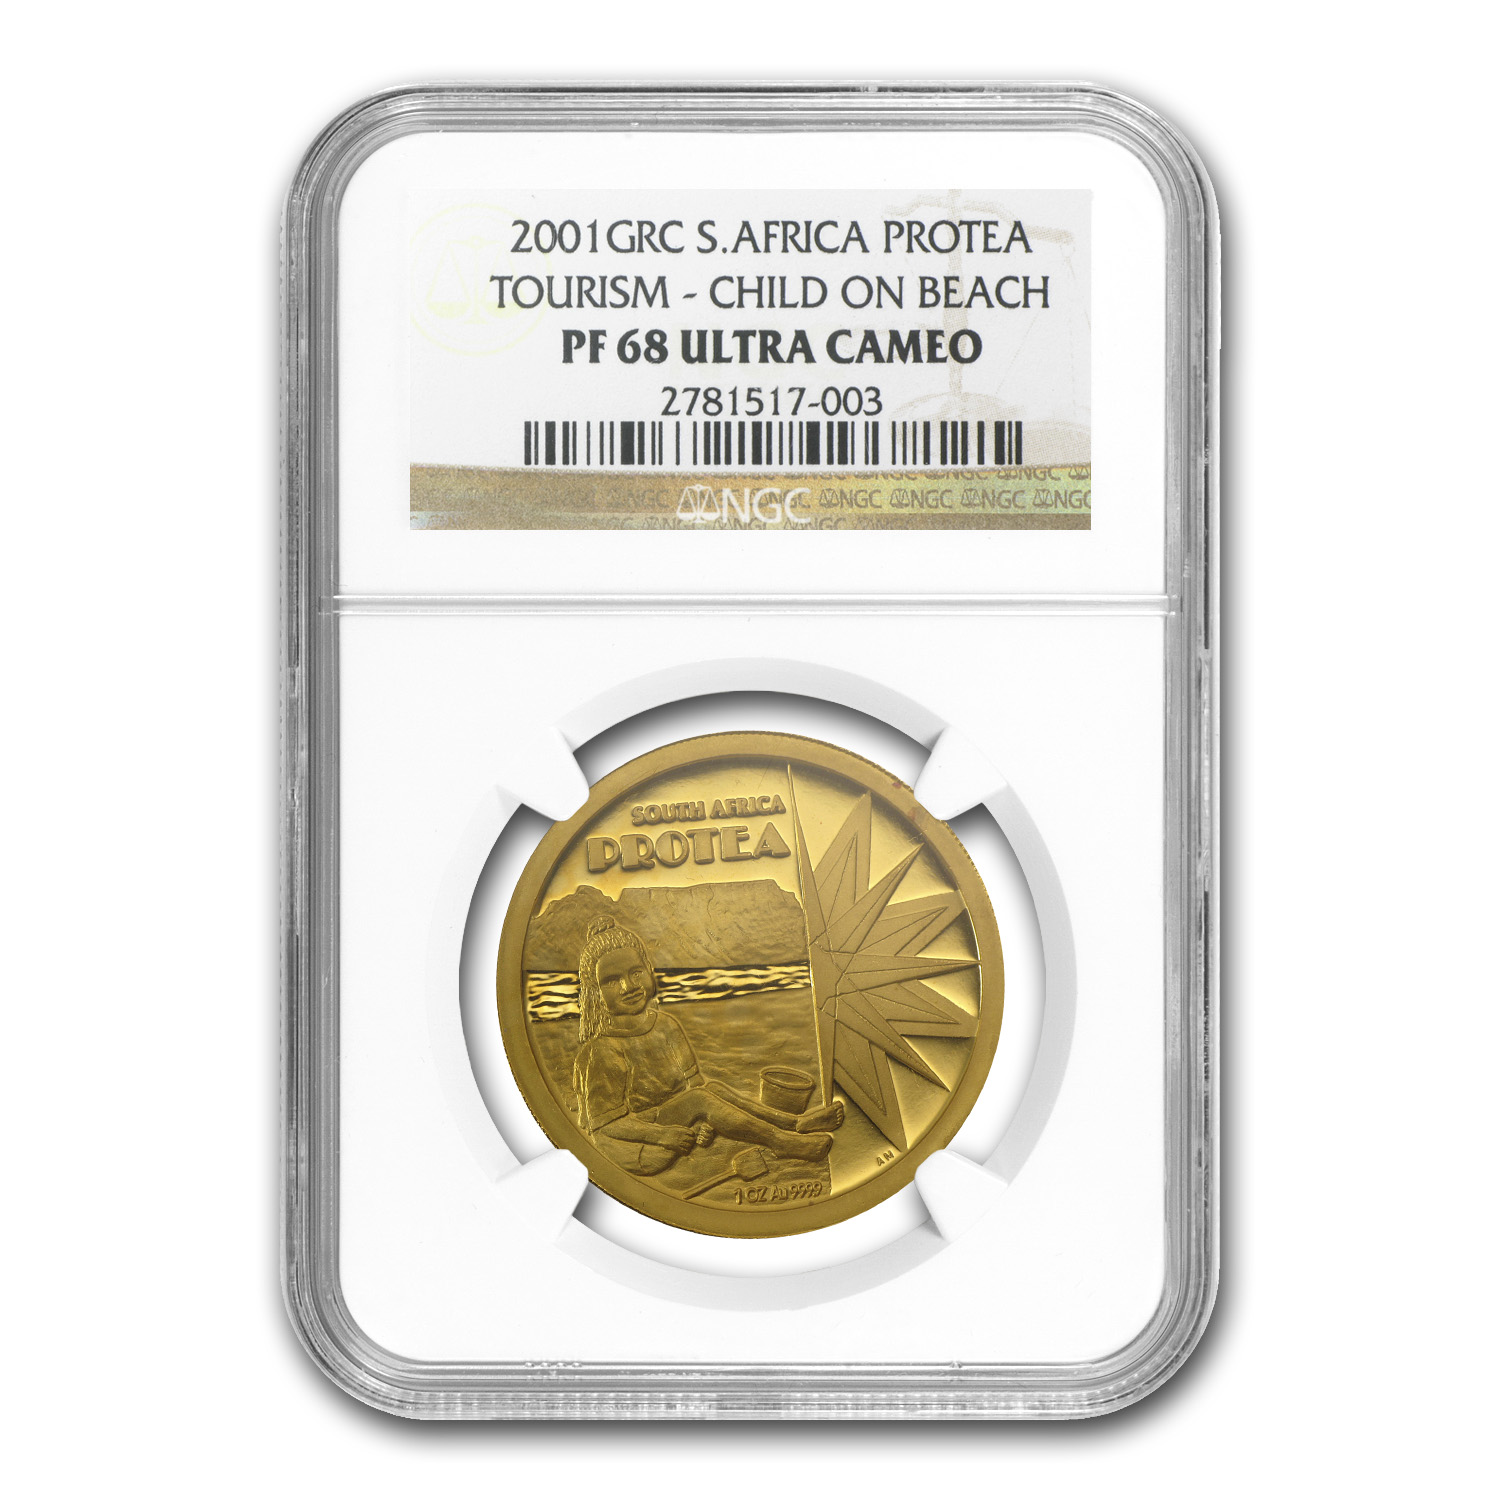 2001 South African Gold 1 oz Protea NGC PF-68 (Tourism)